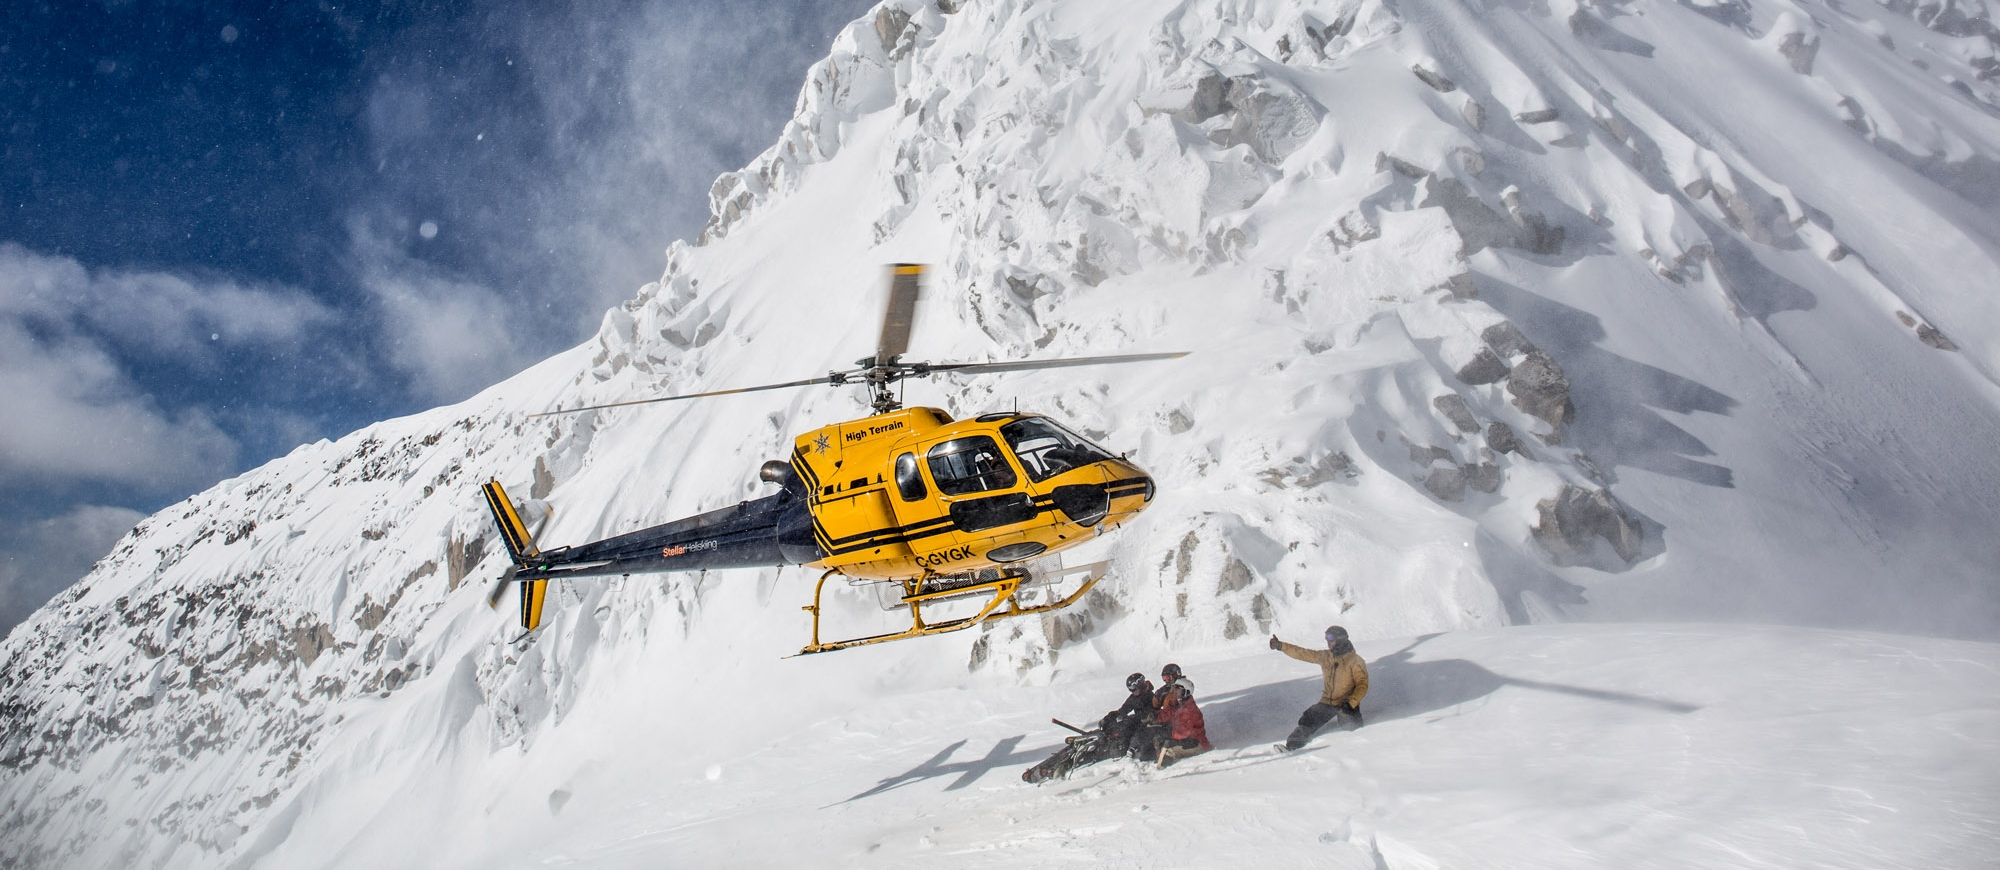 Skiiers crouched down while a Stellar Heliskiing heli lands in the mountain near Kaslo, BC.